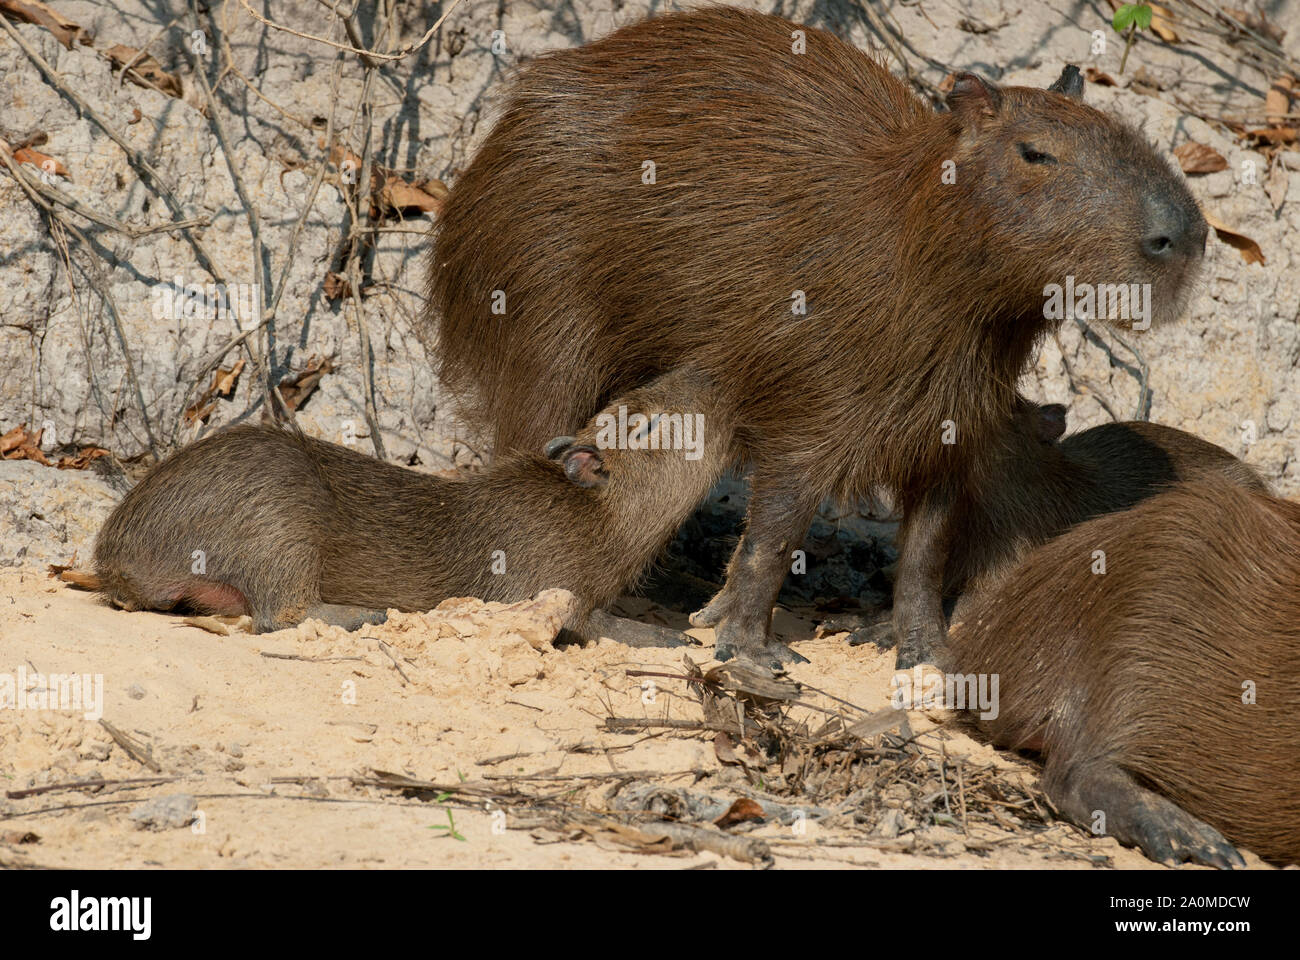 Capybara family in the Pantanal in southern Brazil; young capybaras nursing Stock Photo